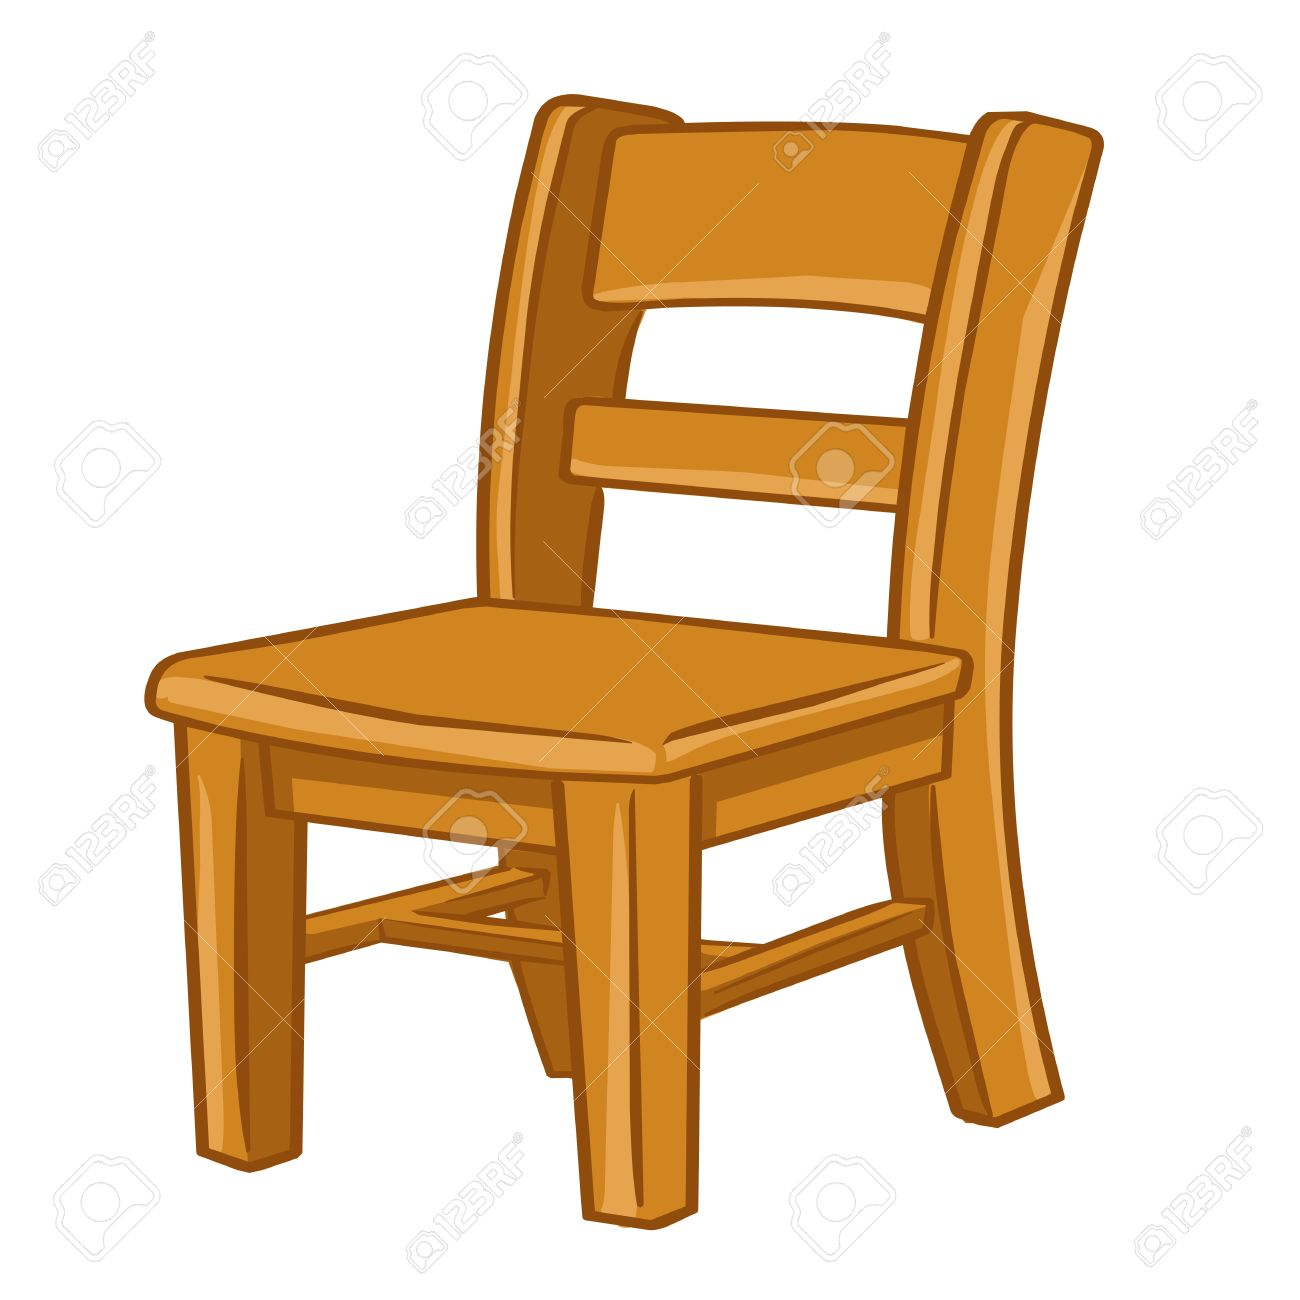 Clipart wooden chair black and white Wooden chair clipart 8 » Clipart Station black and white